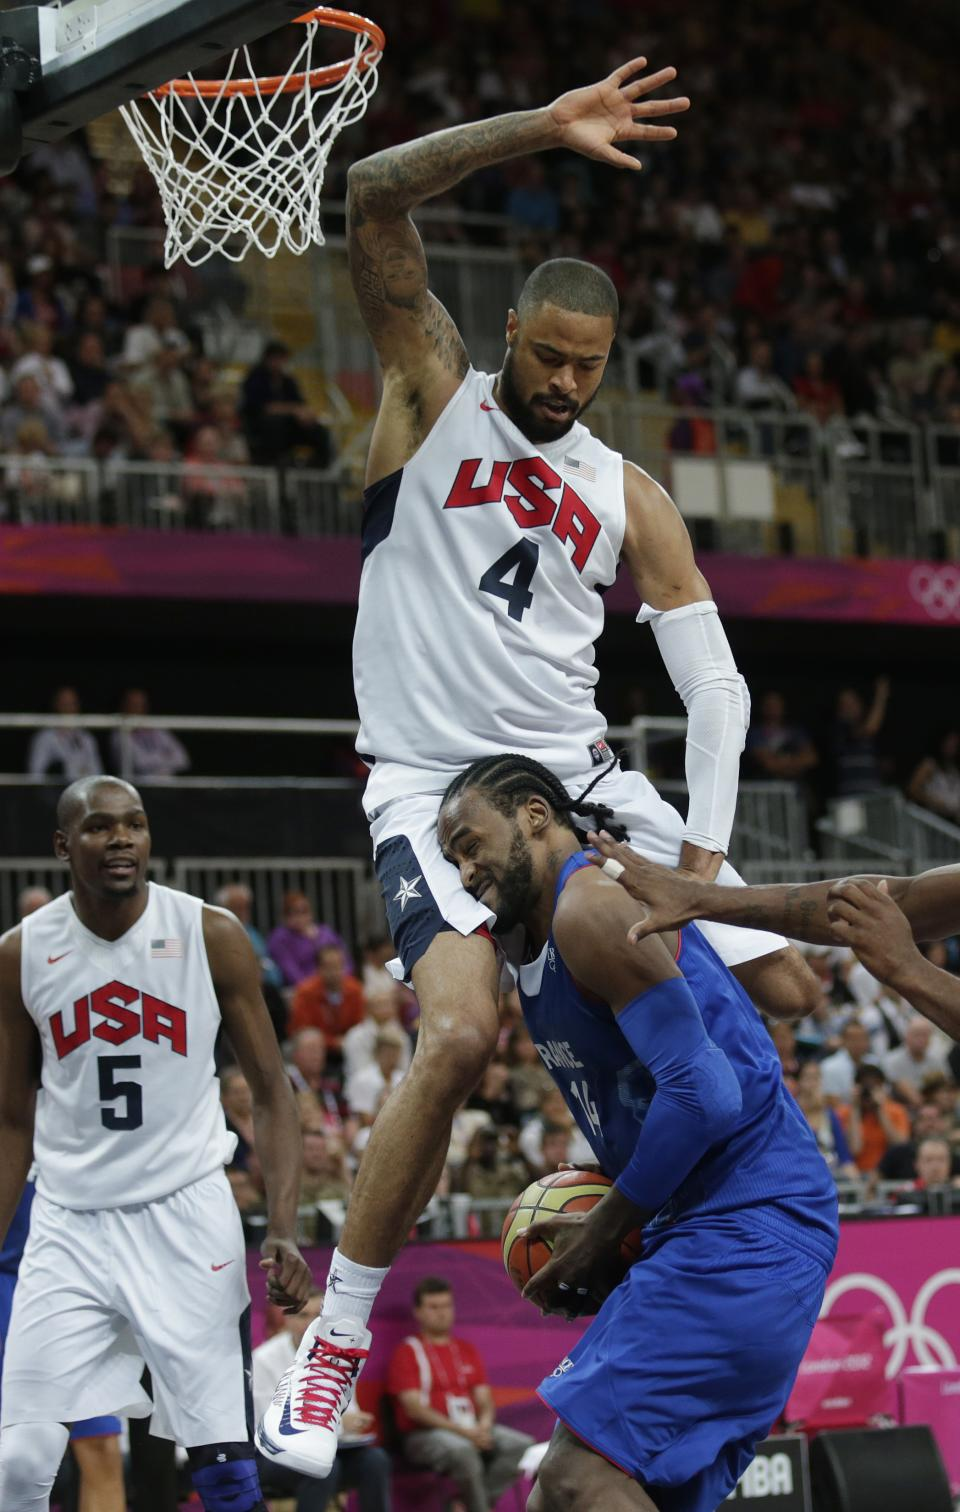 France's Ronny Turiaf is defended by USA's Tyson Chandler during the second half of a preliminary men's basketball game at the 2012 Summer Olympics, Sunday, July 29, 2012, in London. (AP Photo/Charles Krupa)